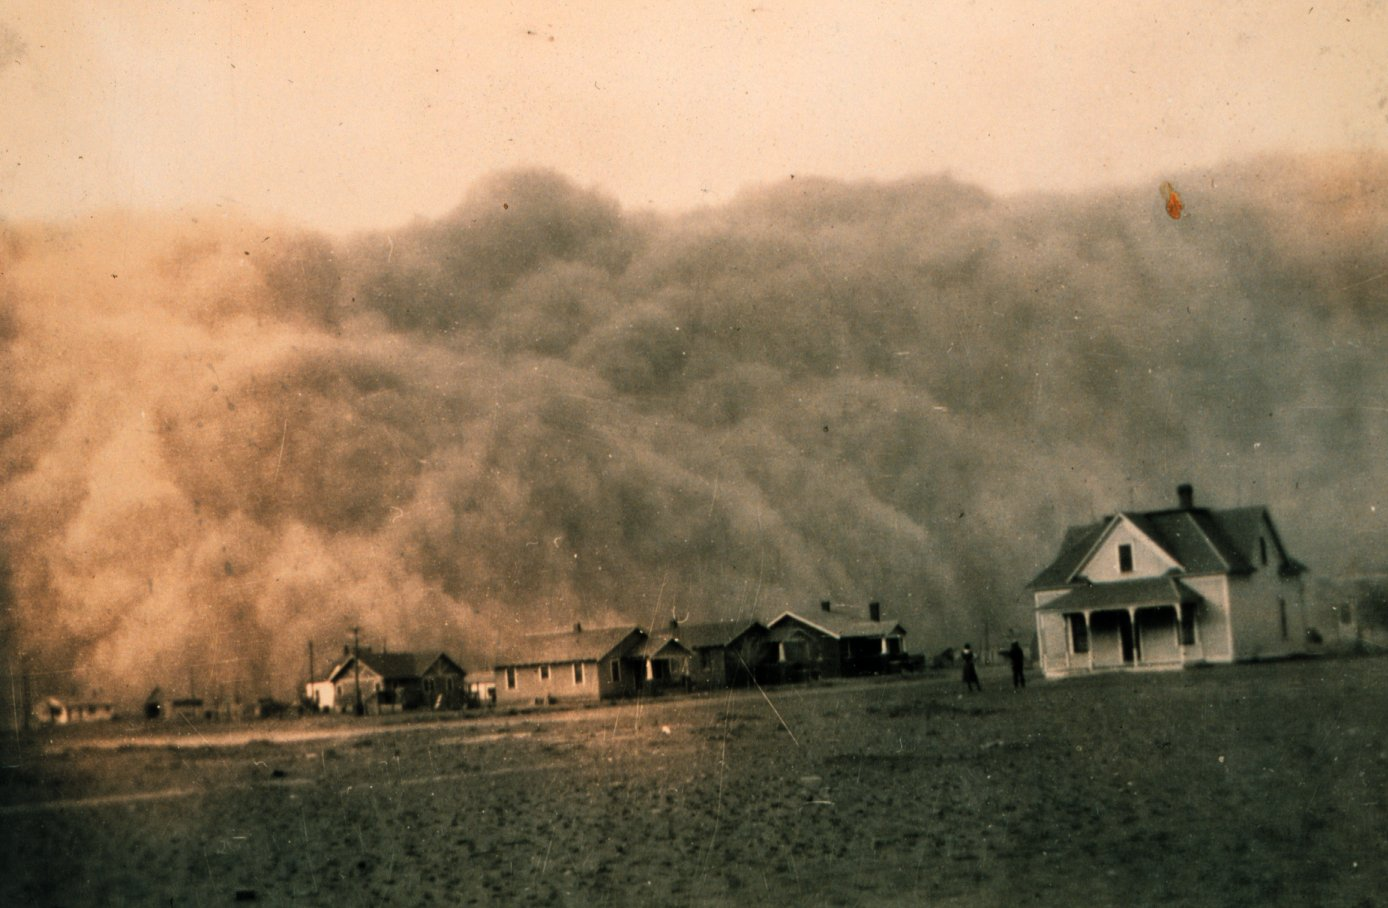 how to sand storms kill people